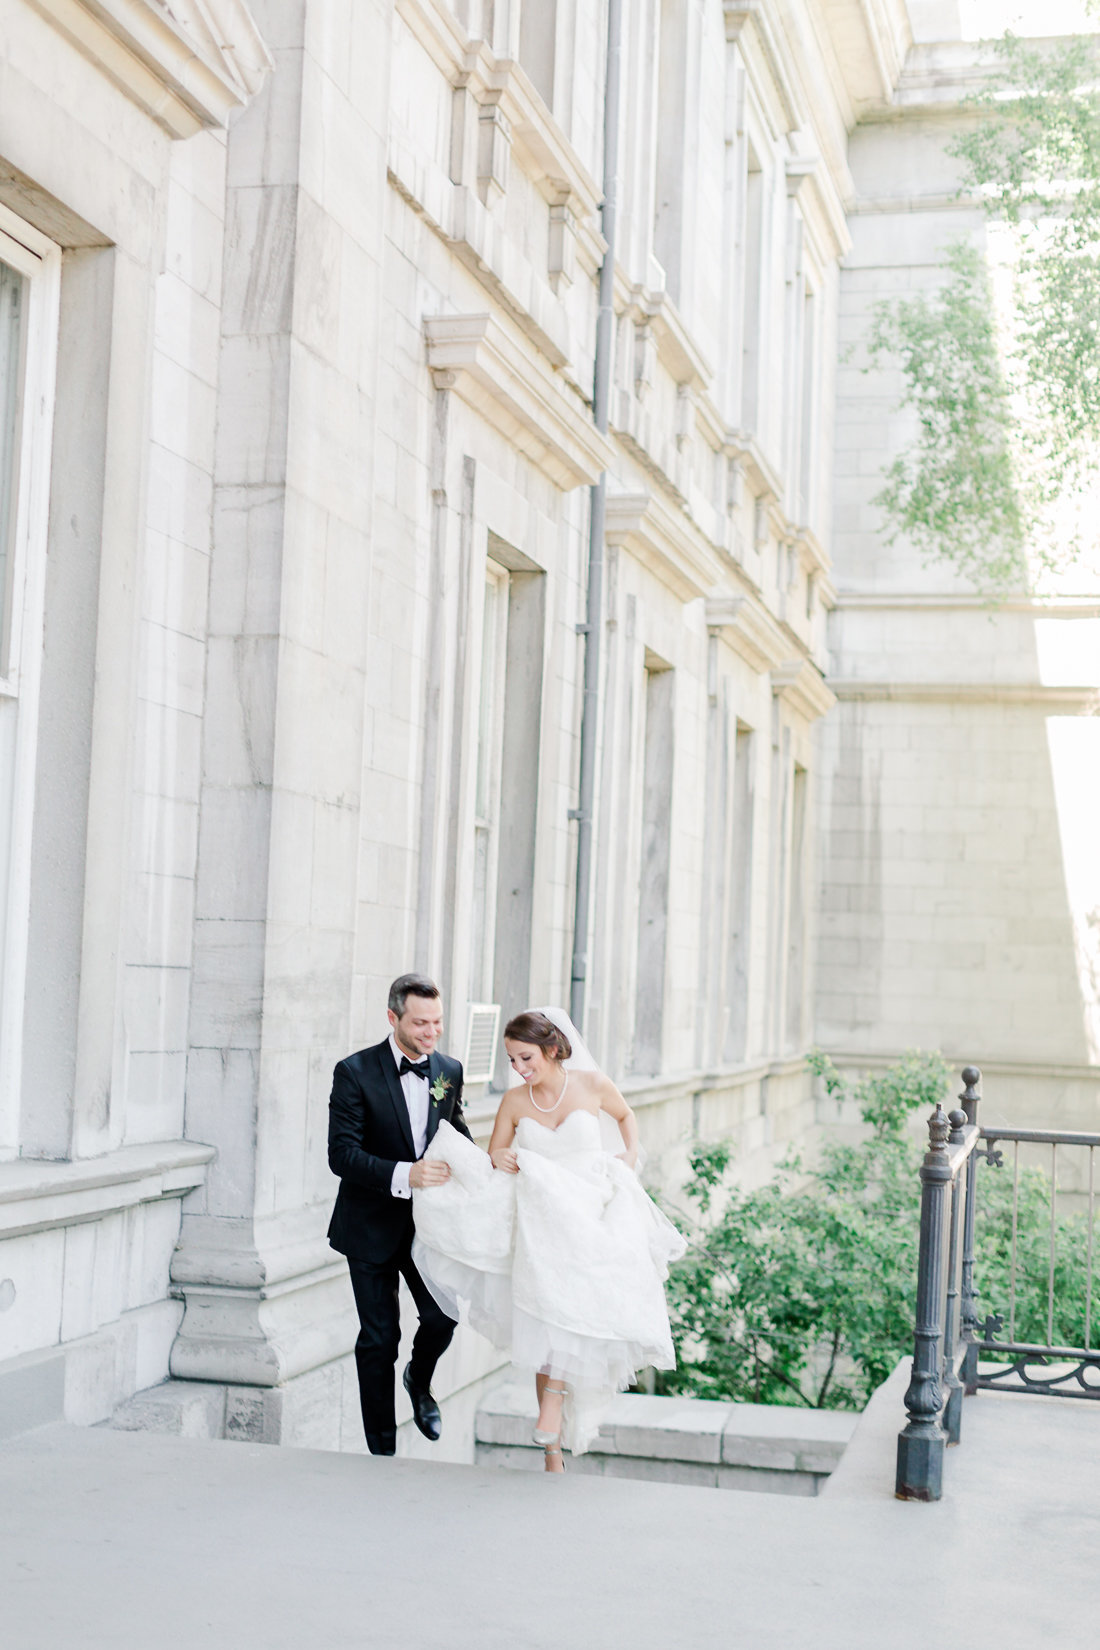 photographe-mariage-auberge-saint-gabriel-lisa-renault-photographie-montreal-wedding-photographer-44